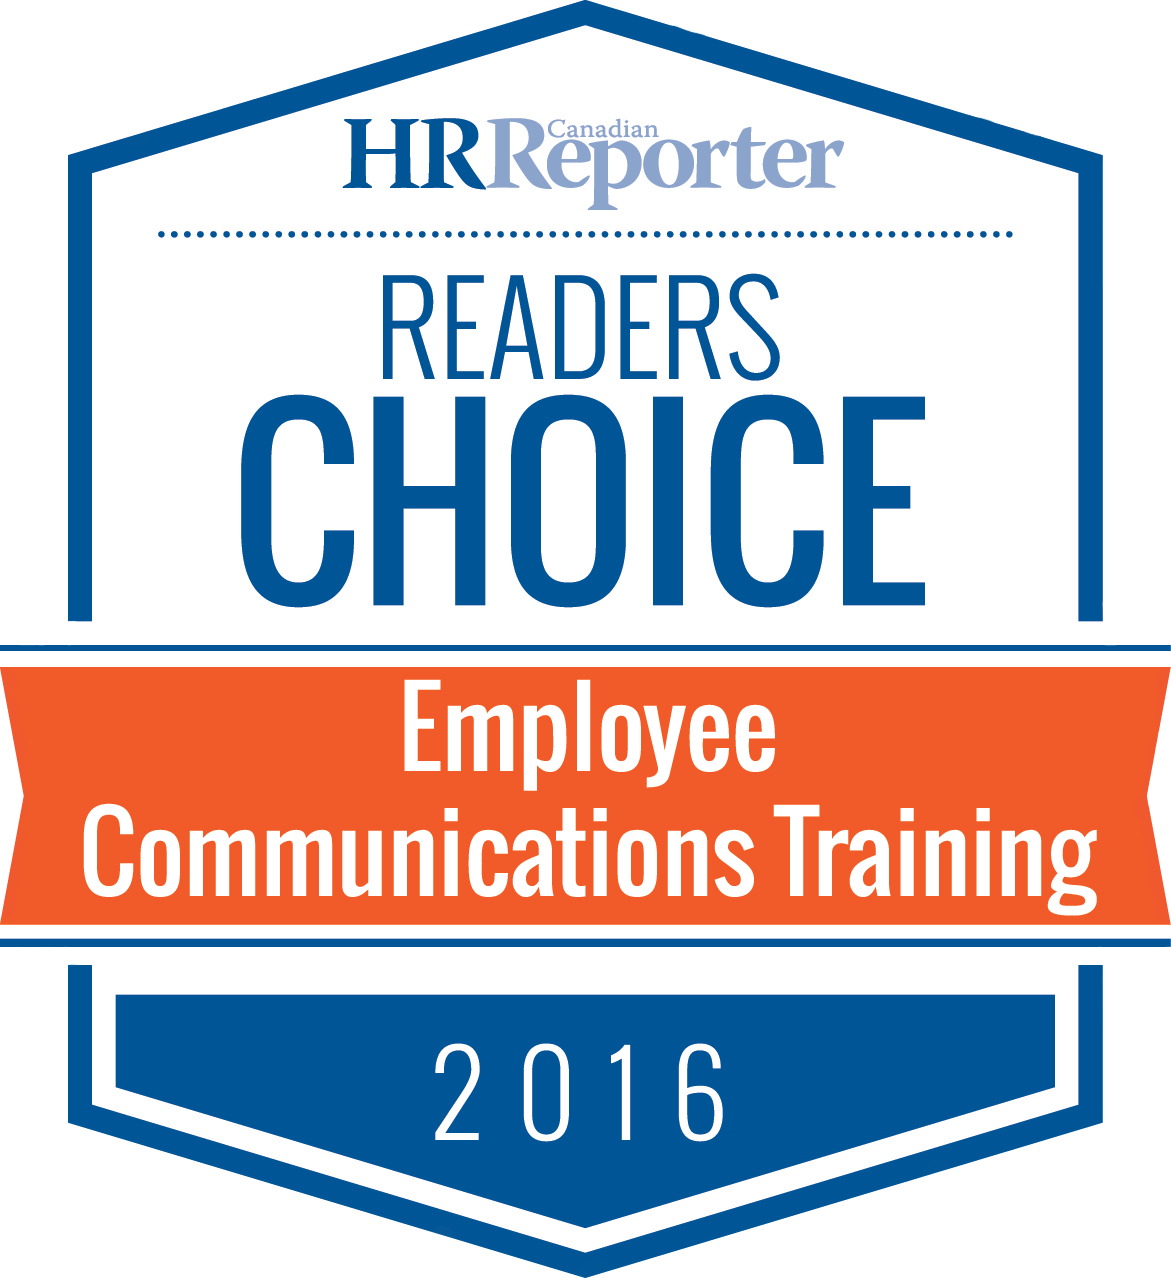 Top Employee Communication Training Company